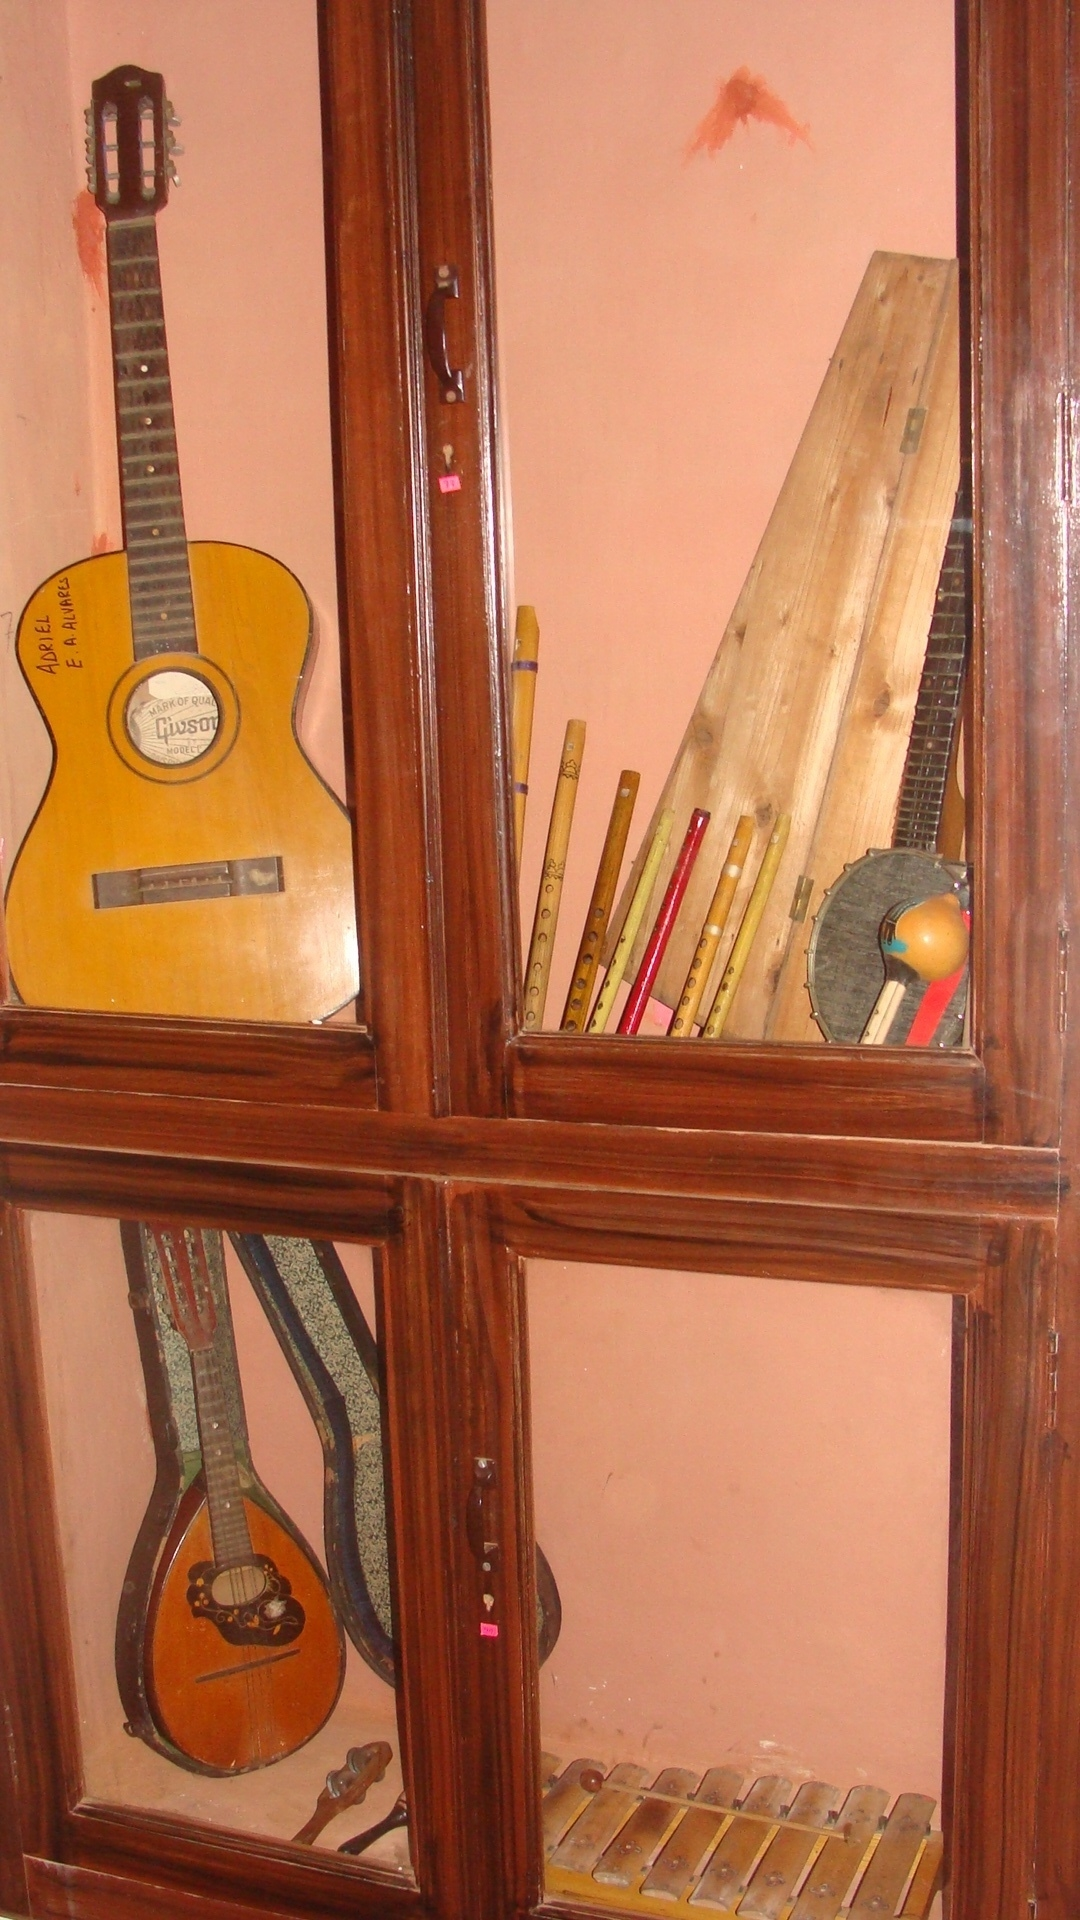 Goan musical instruments